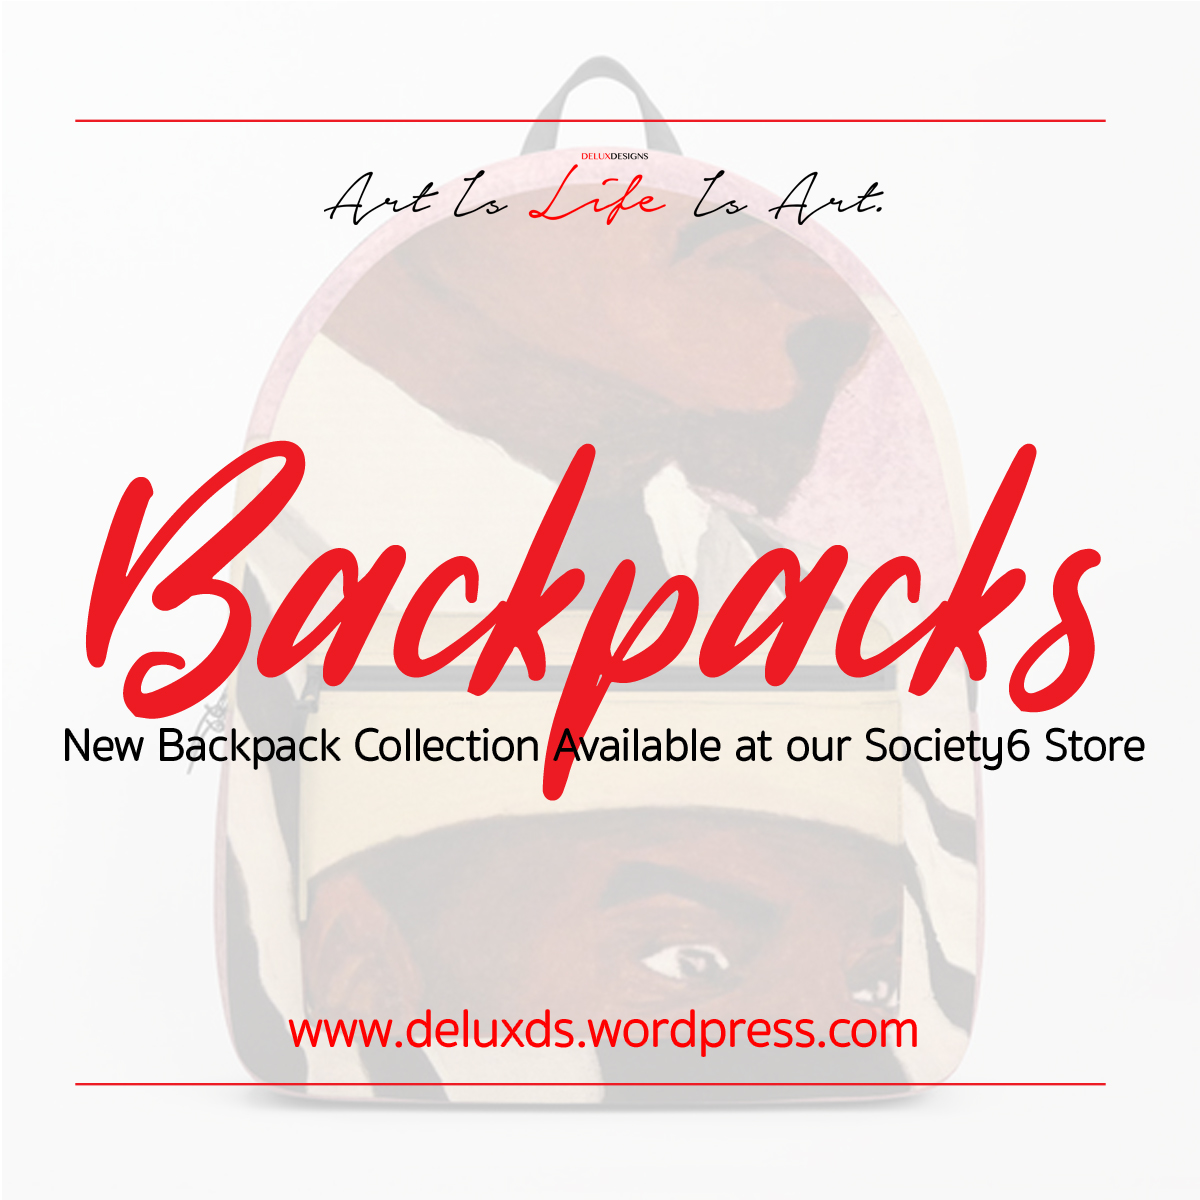 [NEW] Backpack Collection!